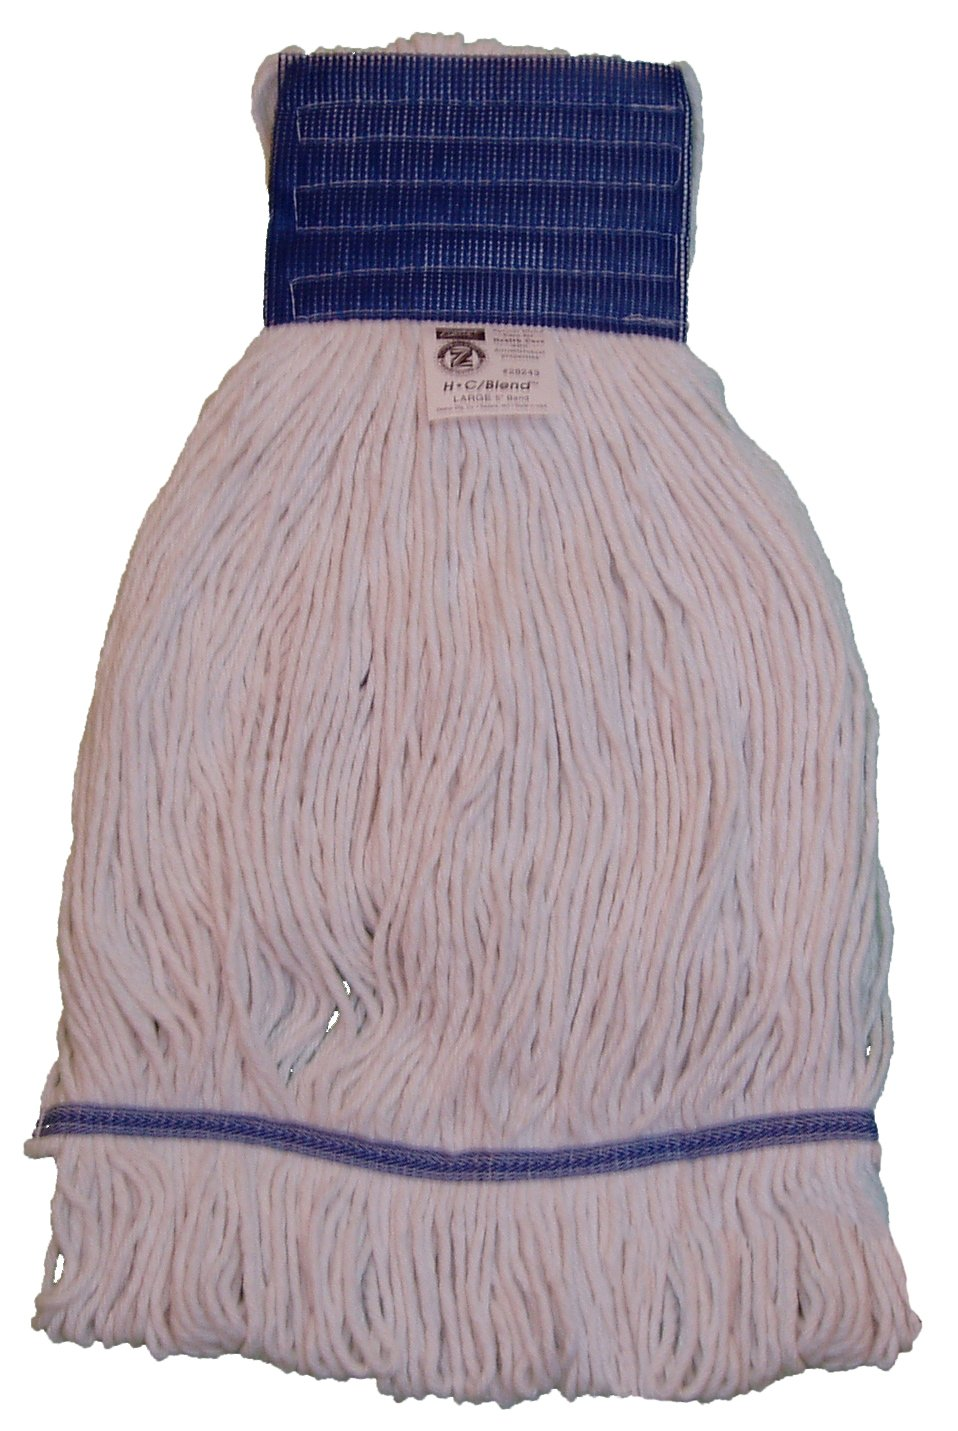 Zephyr 28244 HC/Blend Natural 4-Ply Yarn X-large Health Care Loop Mop Head with 5'' Mesh Wide Band (Pack of 12)